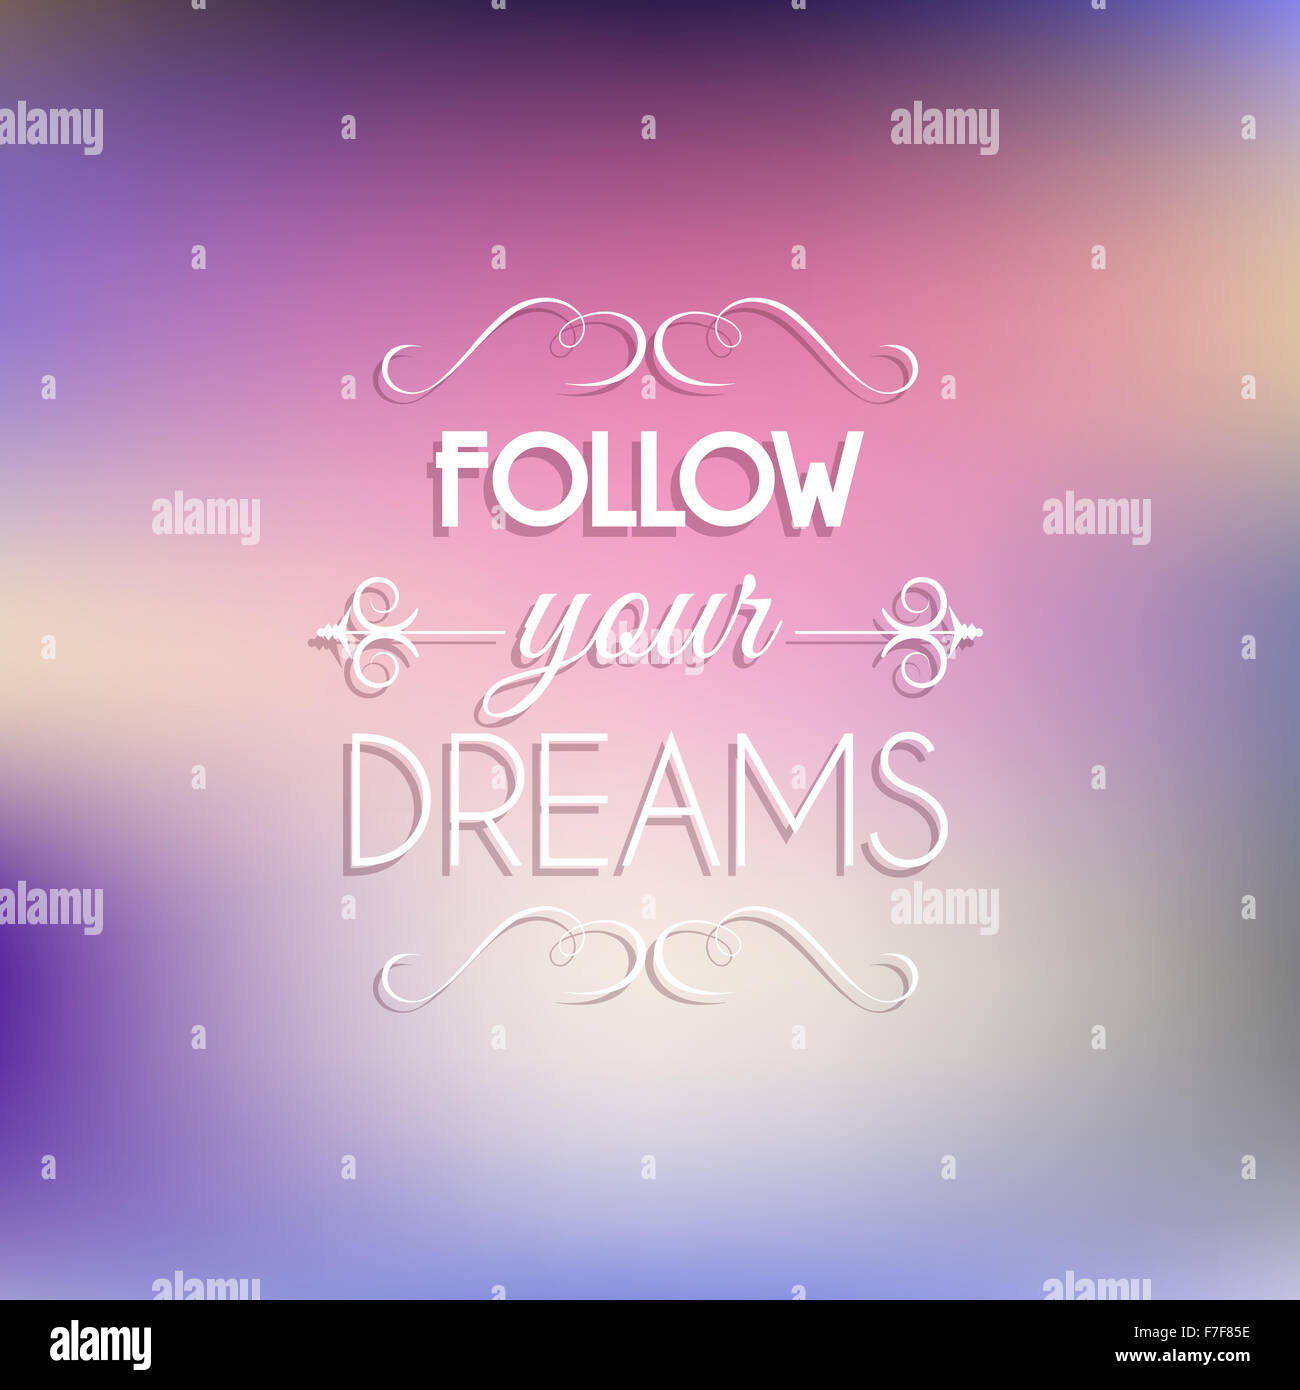 Inspirational Quote Background With The Words Follow Your Dreams